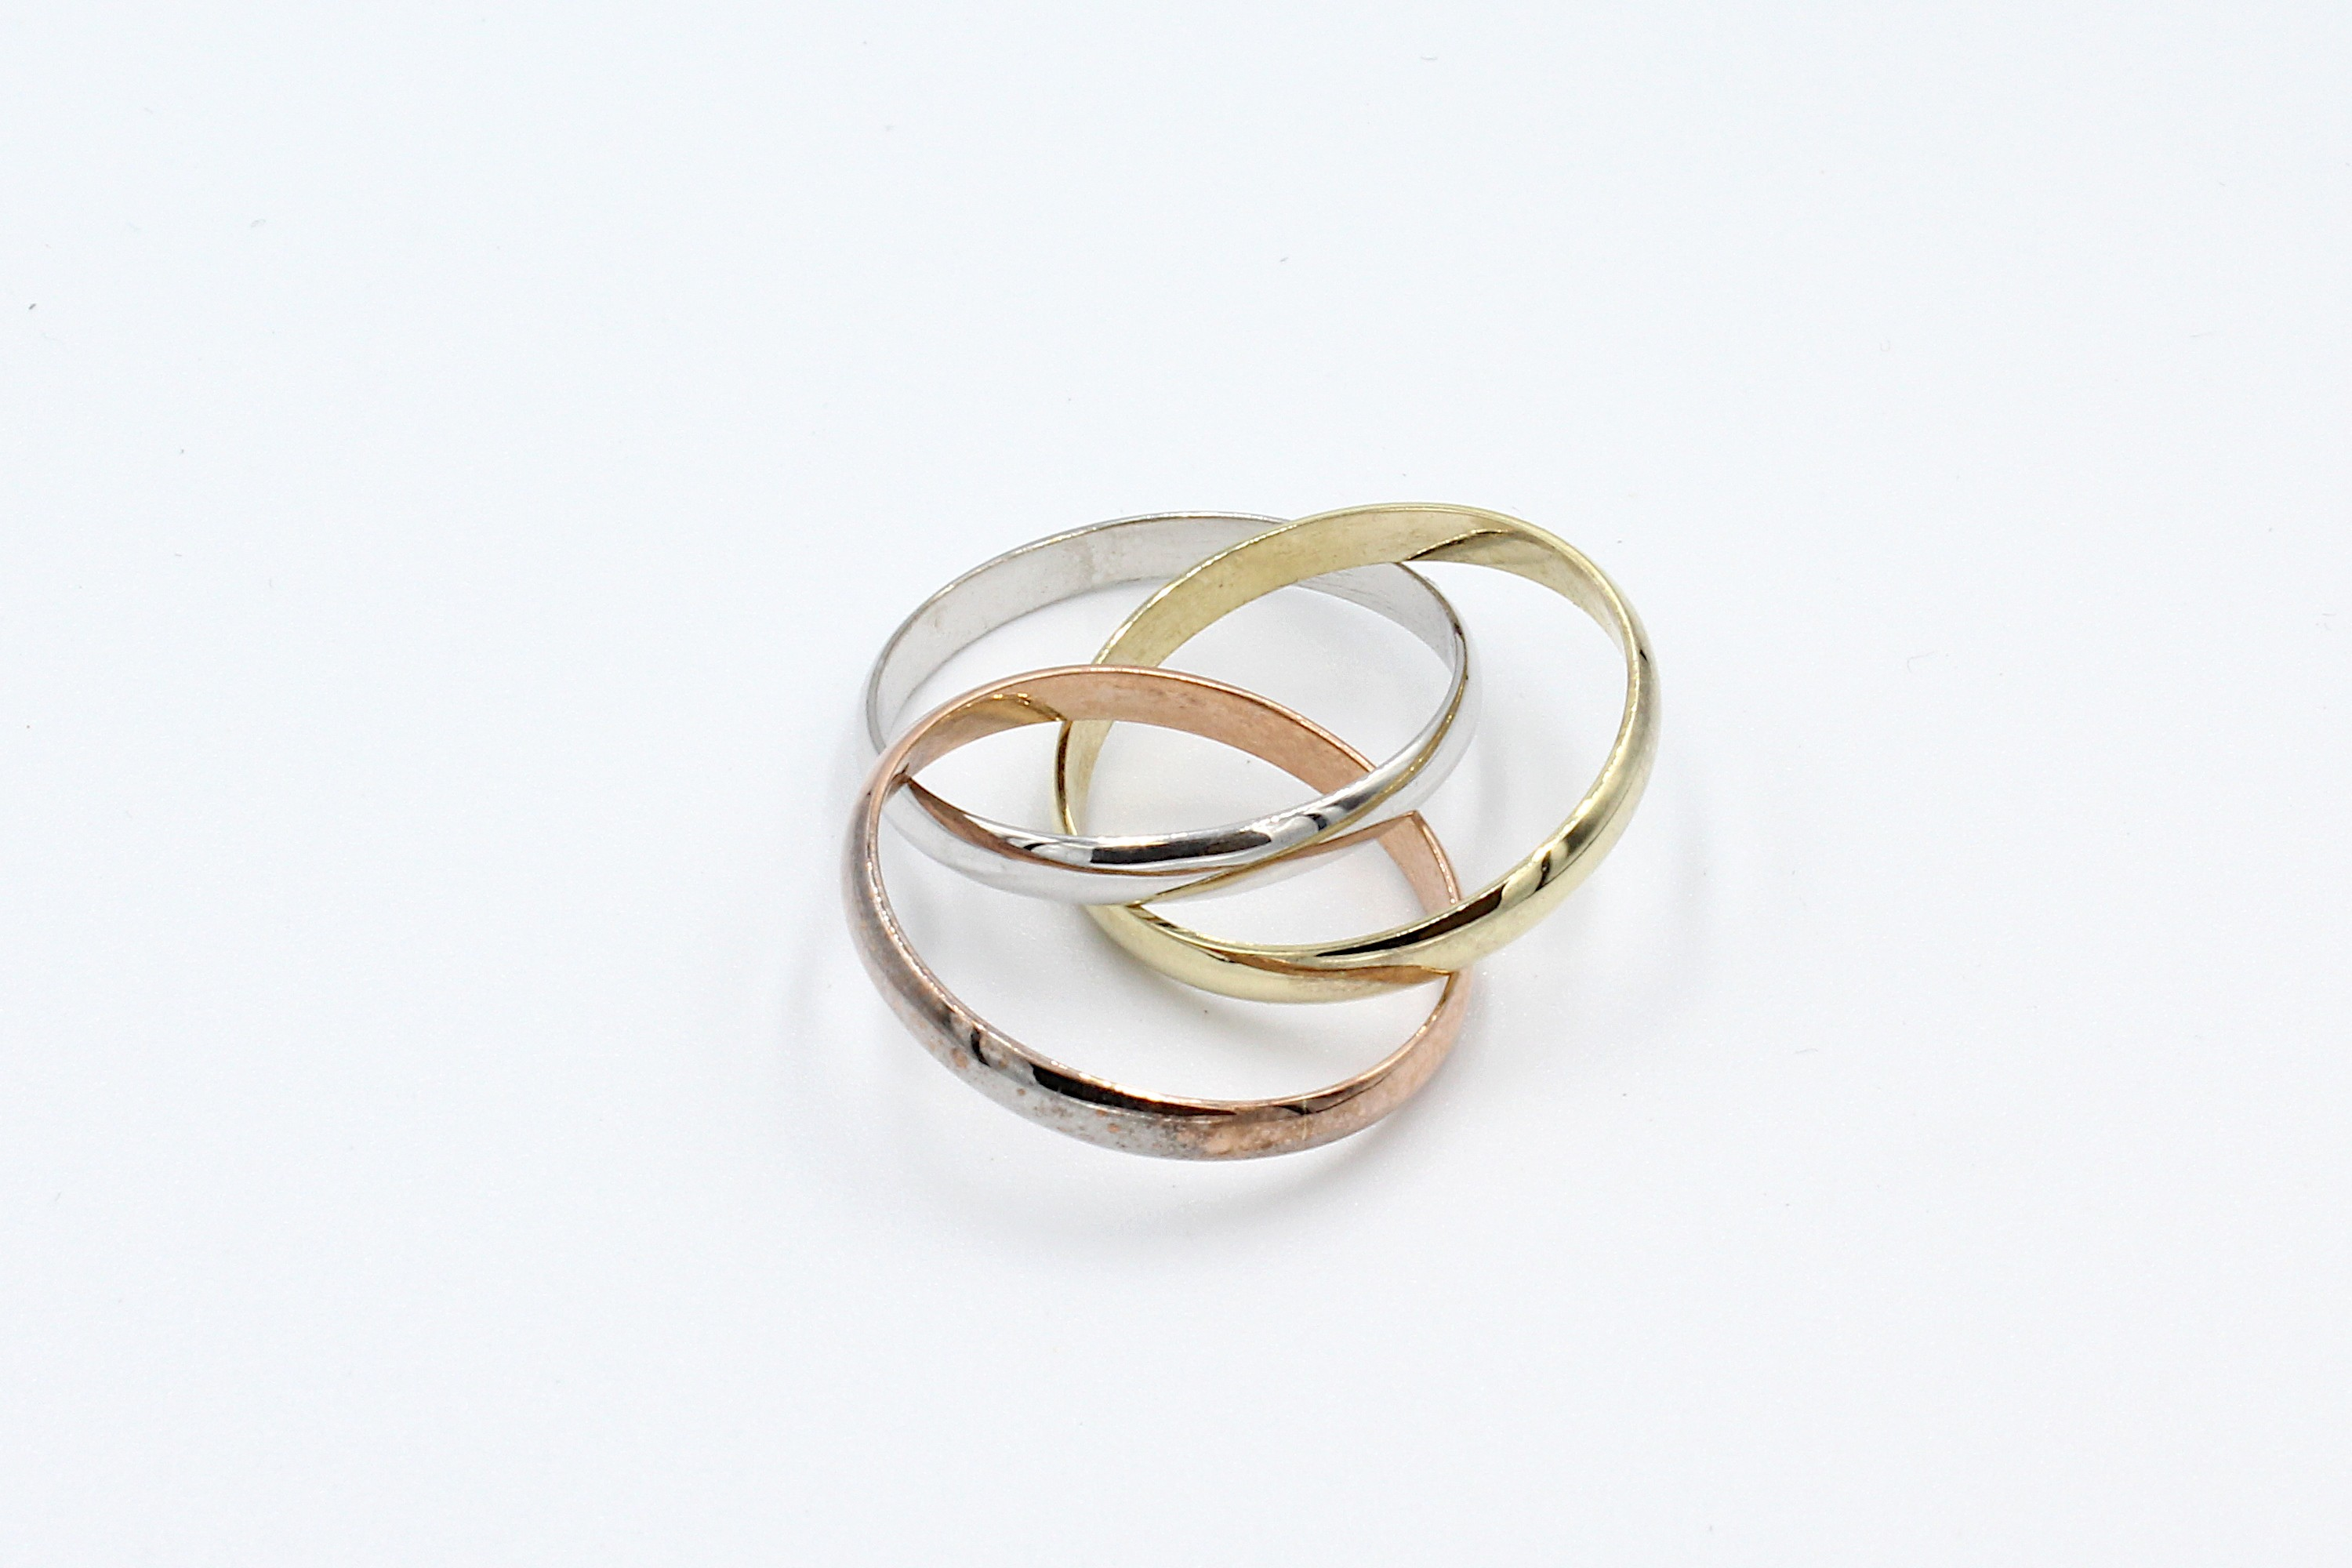 a trio russian wedding ring bands on a white background